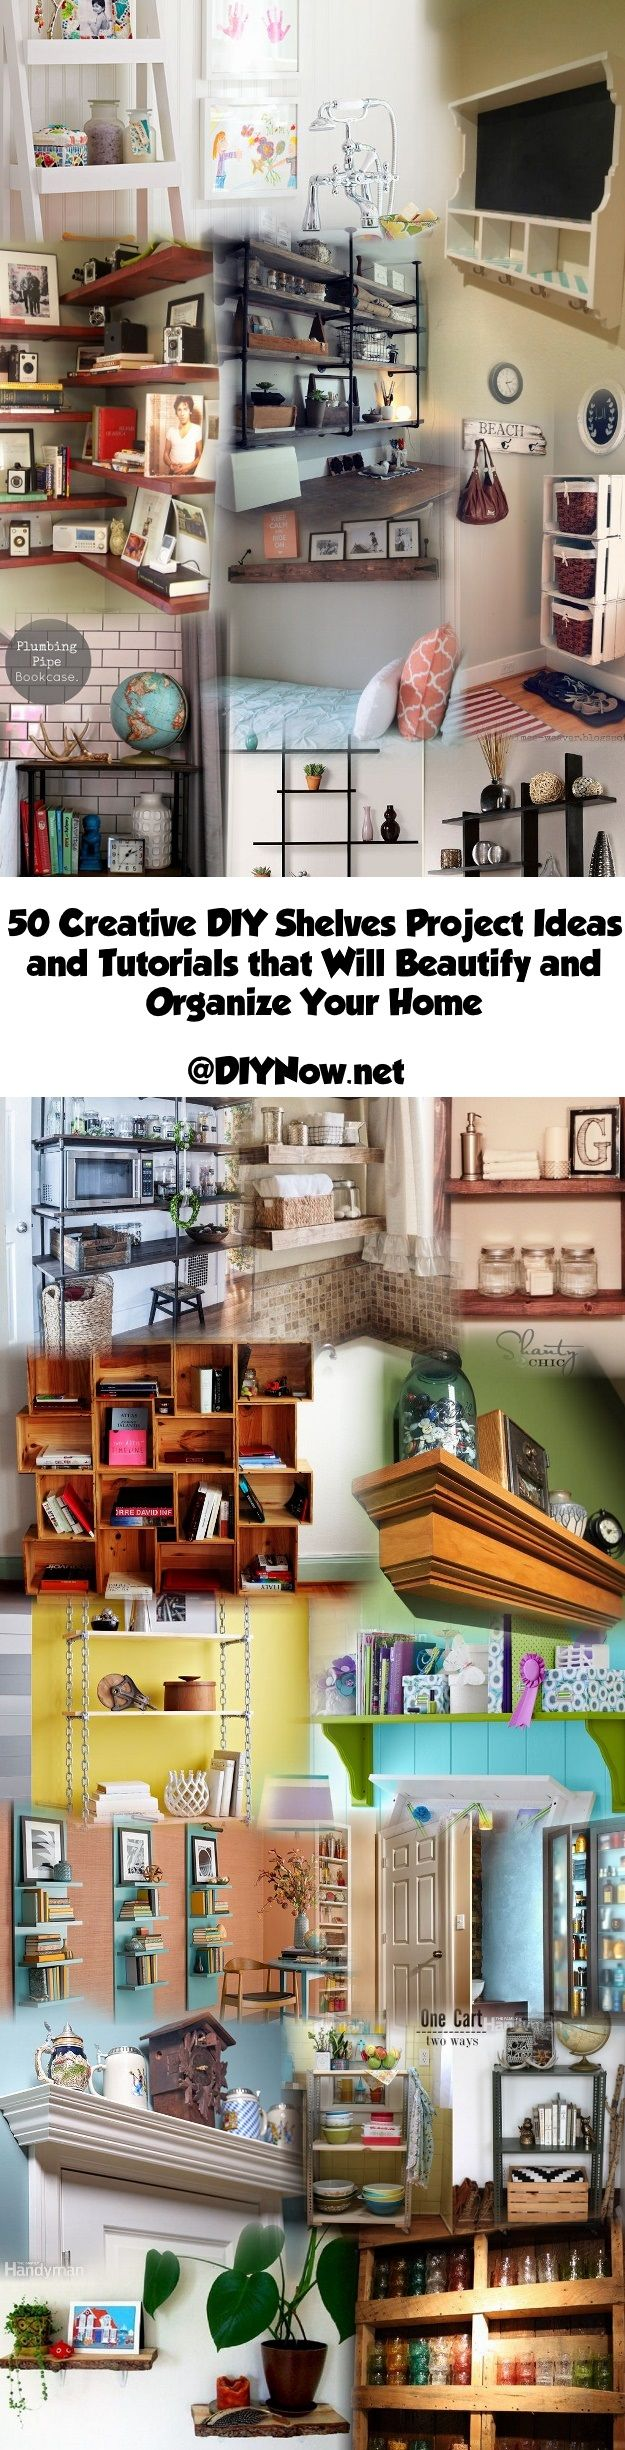 50 Creative DIY Shelves Project Ideas and Tutorials that Will Beautify and Organize Your Home